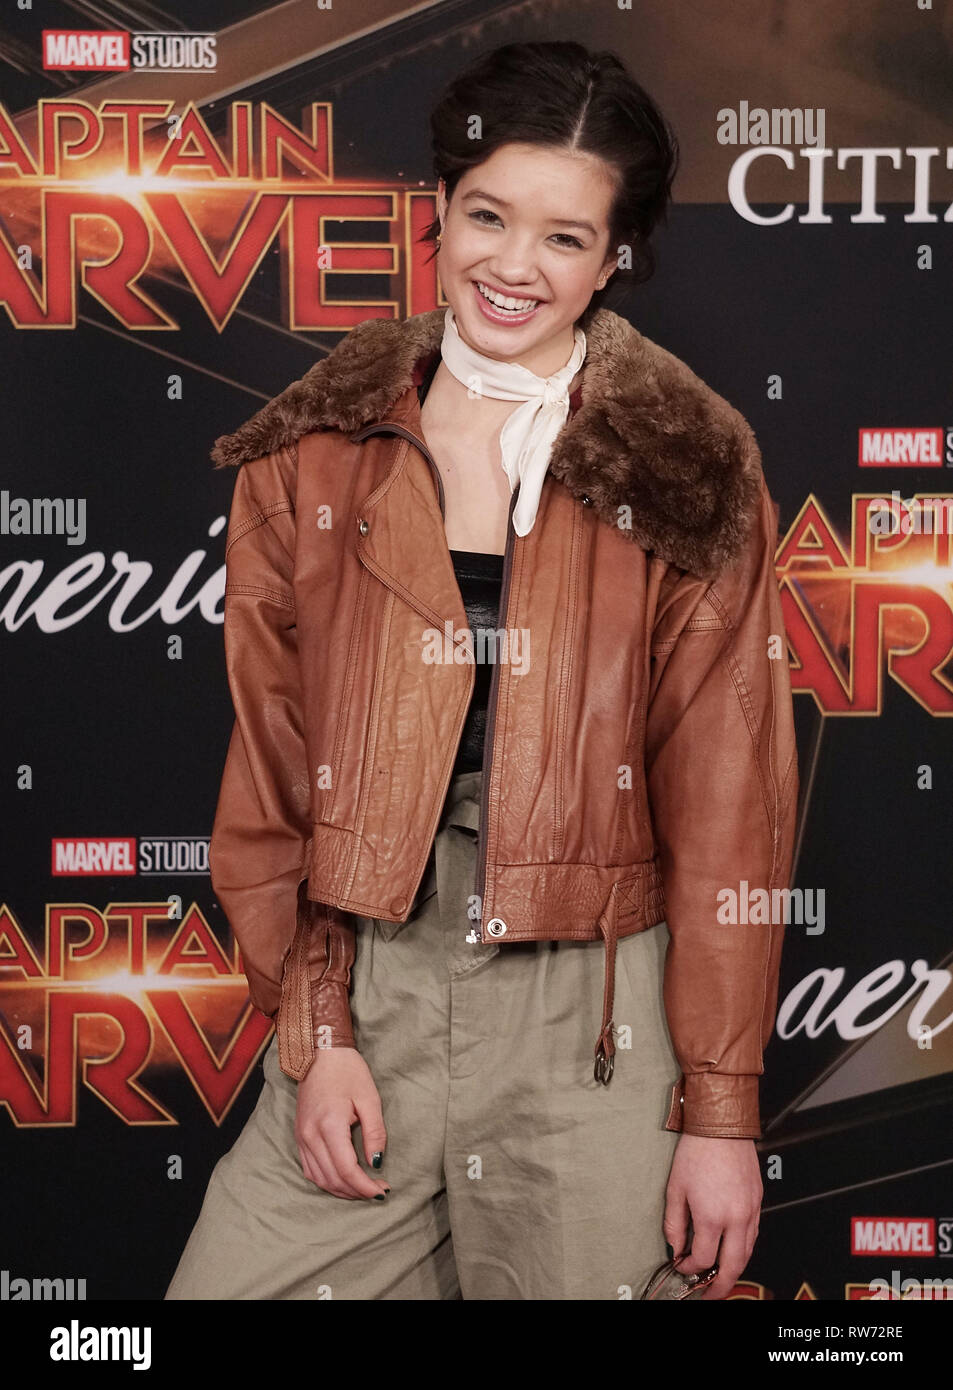 Los Angeles, USA. 04th Mar, 2019. Peyton Elizabeth Lee 075 attends the Marvel Studios 'Captain Marvel' premiere on March 04, 2019 in Hollywood, California. Credit: Tsuni/USA/Alamy Live News - Stock Image